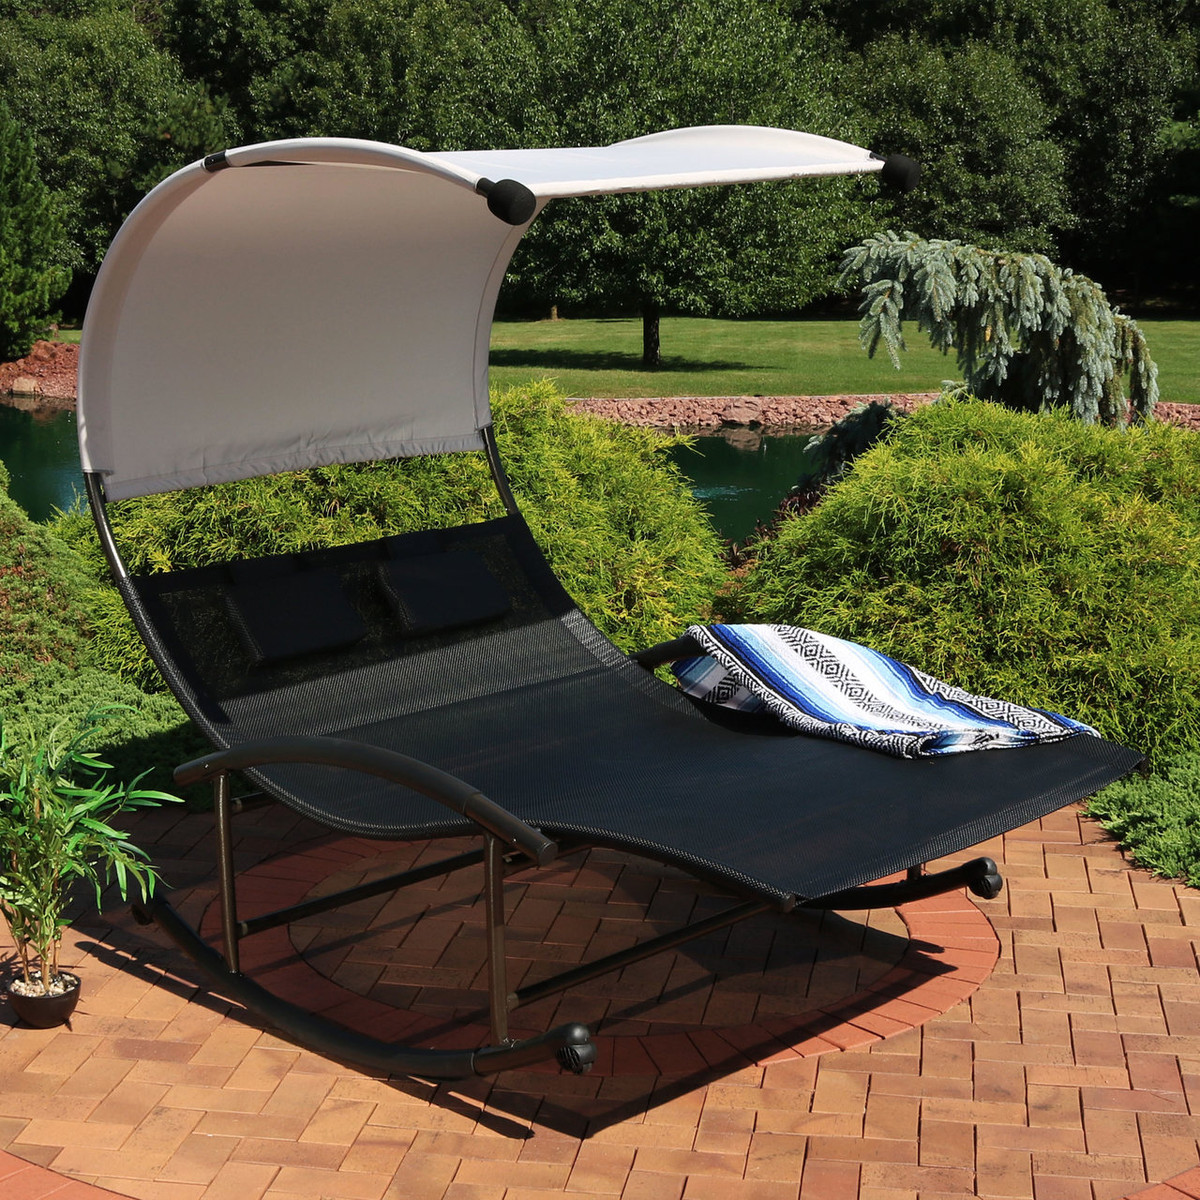 Sunnydaze double chaise rocking lounge chair with canopy and headrest pillows black